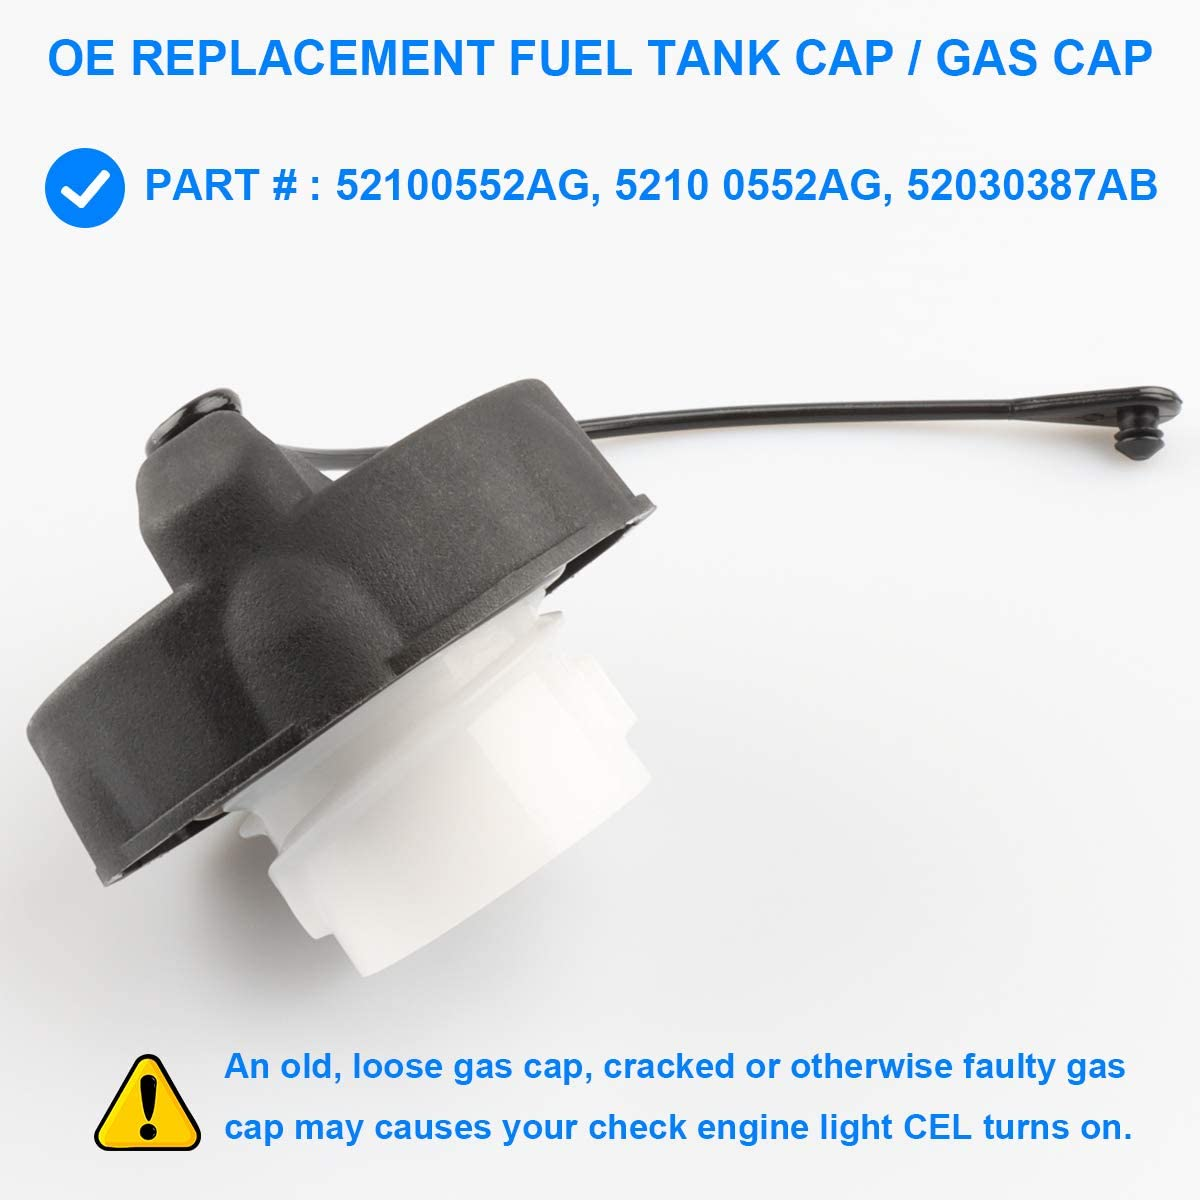 Allmotorparts Gas Cap Fuel Tank Cap Non-Locking Replace 52100552AG 52030387AB 52030387AA